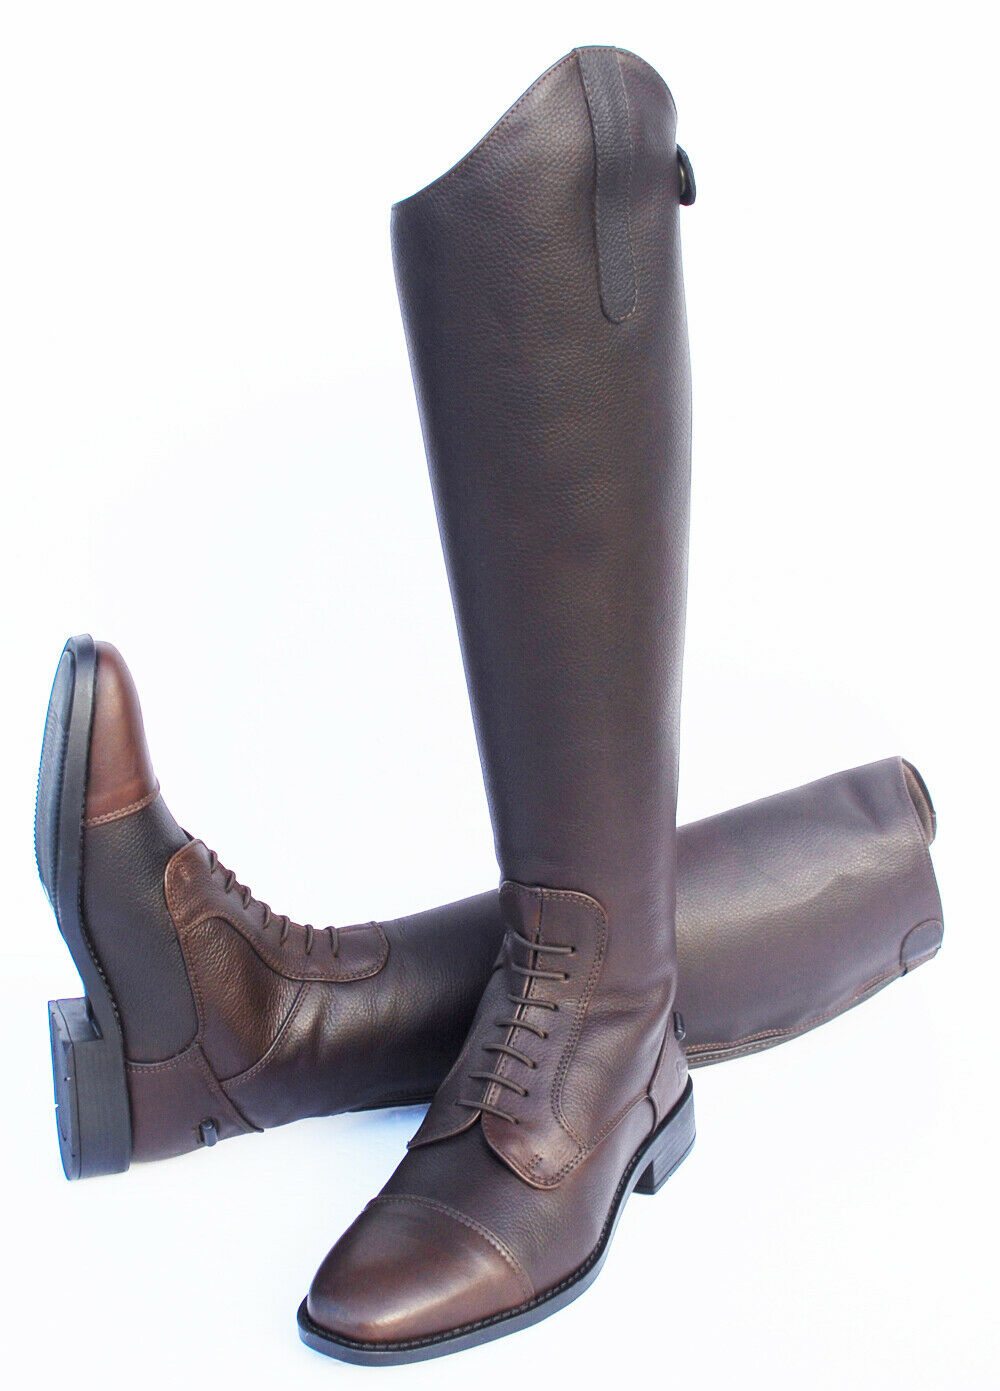 NEW -  Rhinegold Elite Luxus Leather Long Riding Boots-Antique Brown -Various  discount promotions